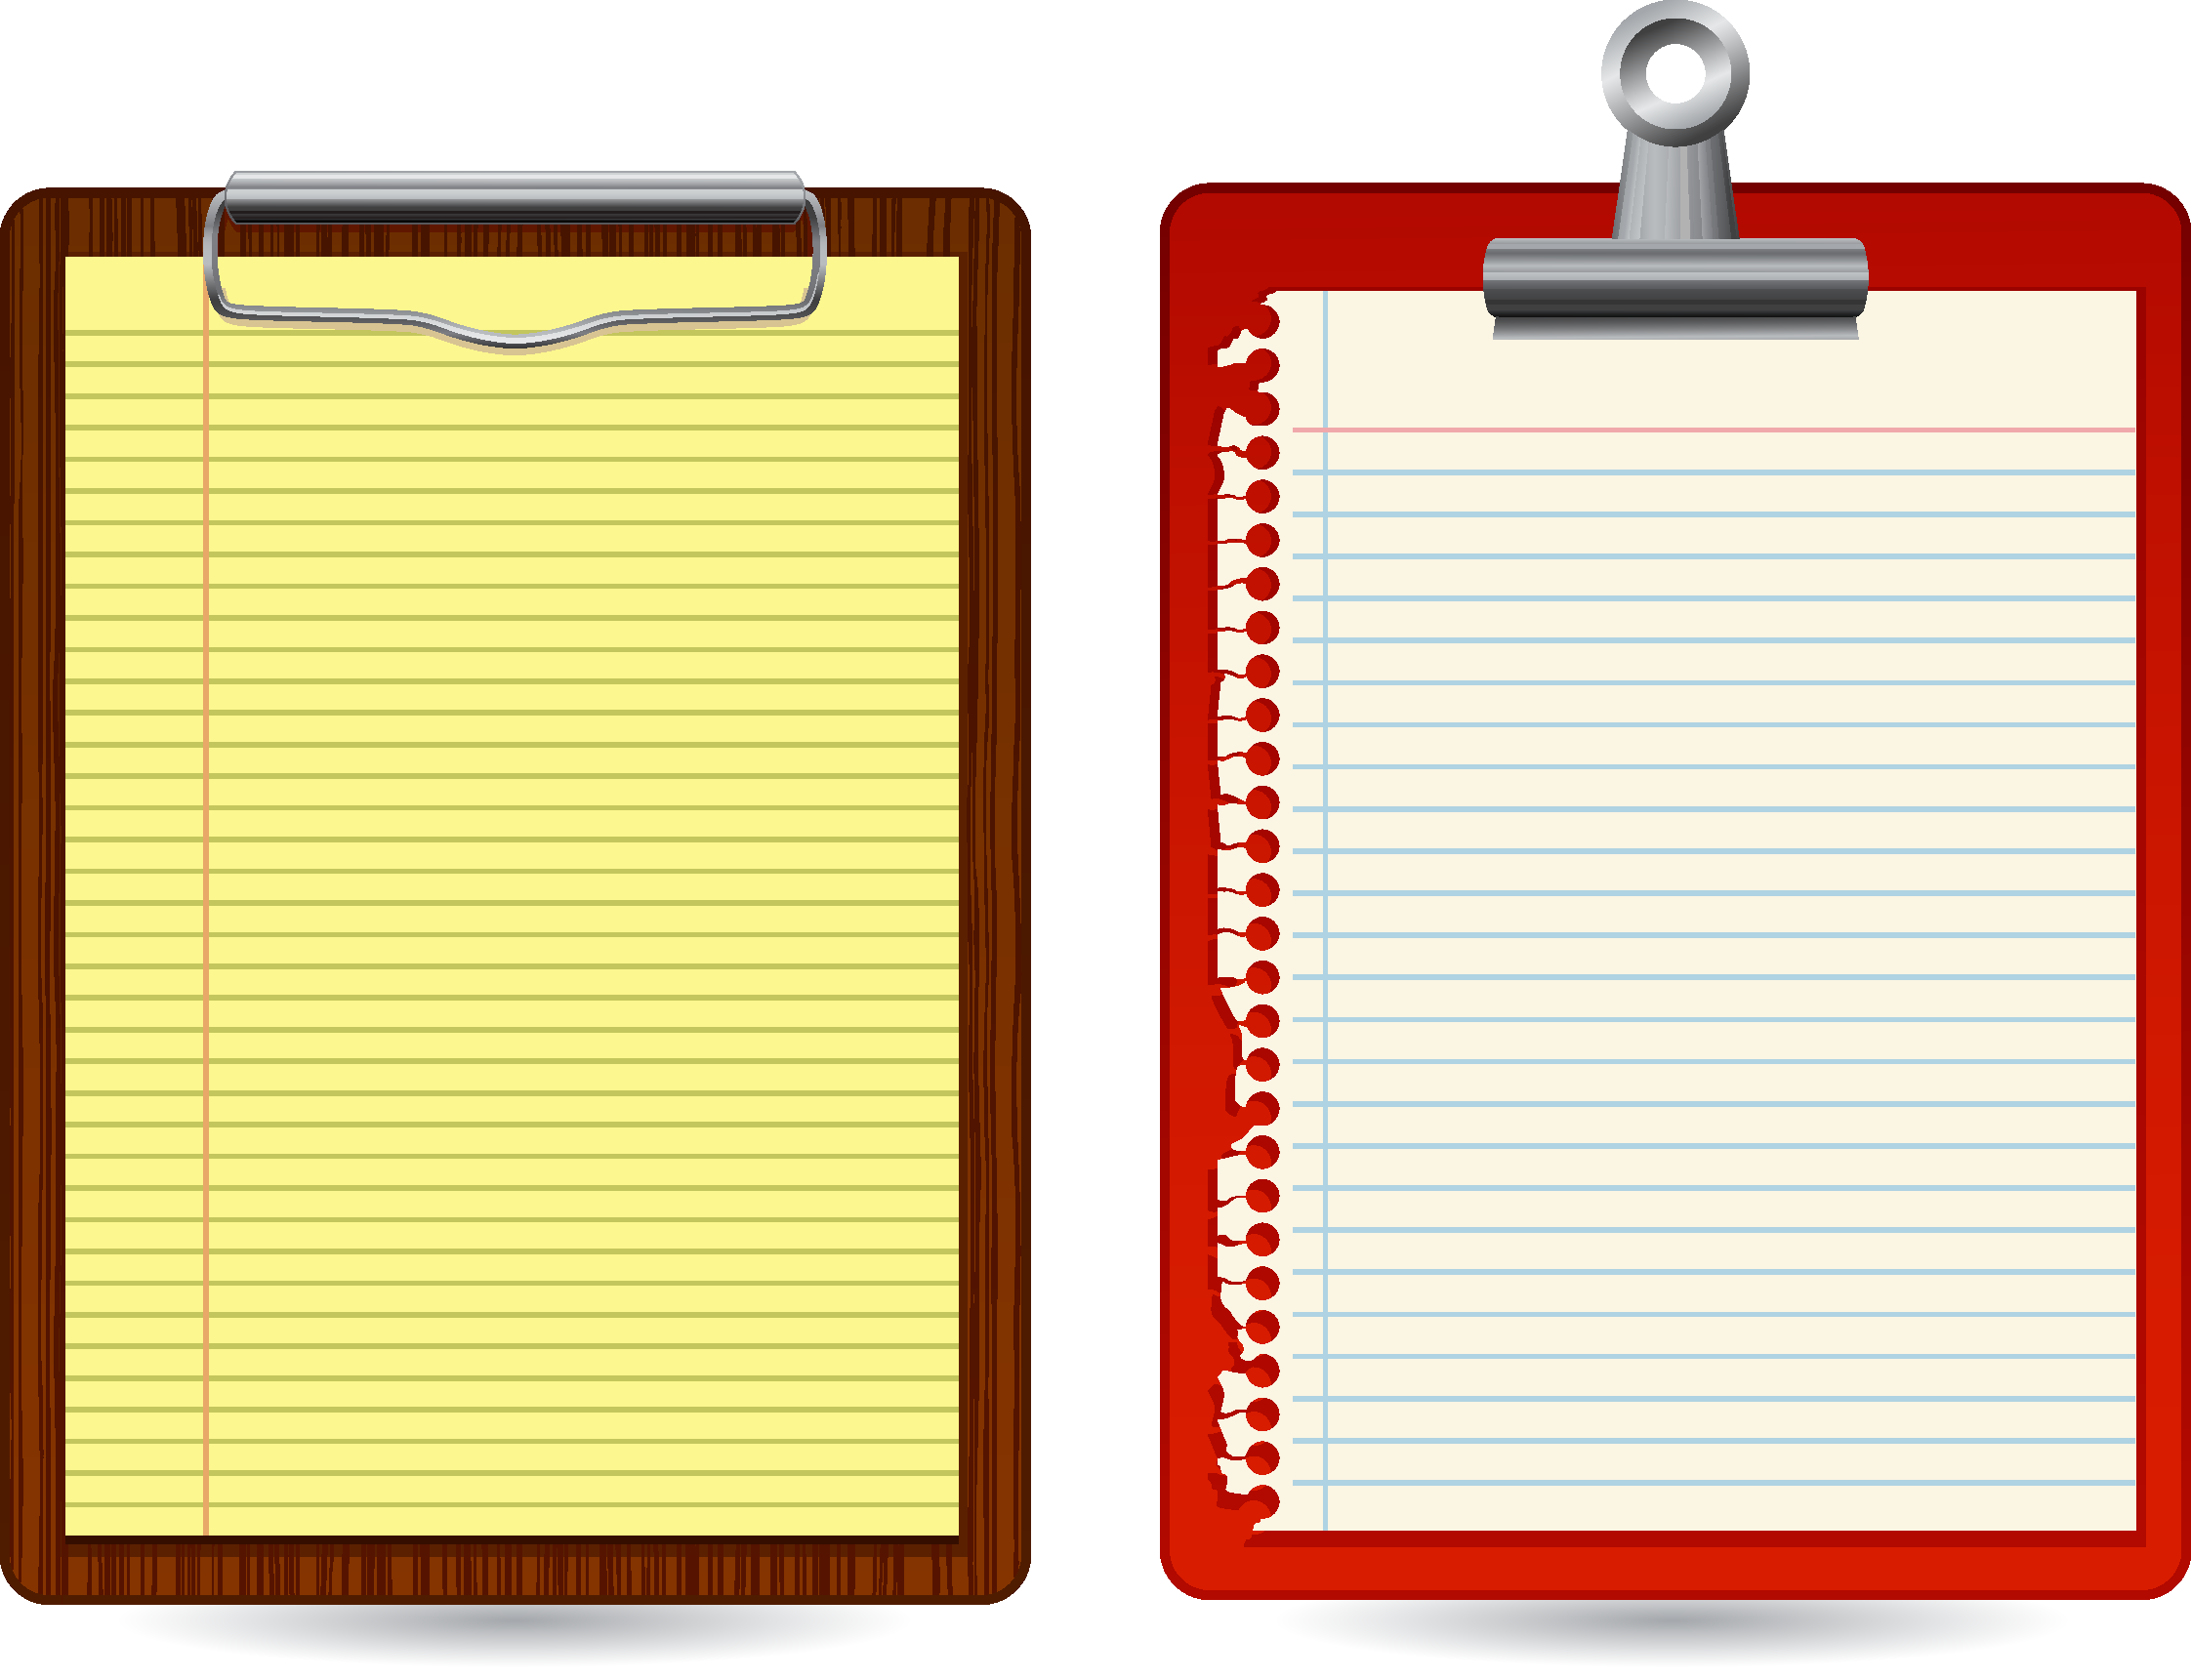 Notepad clipart notbook. Phonograph record drawing clip